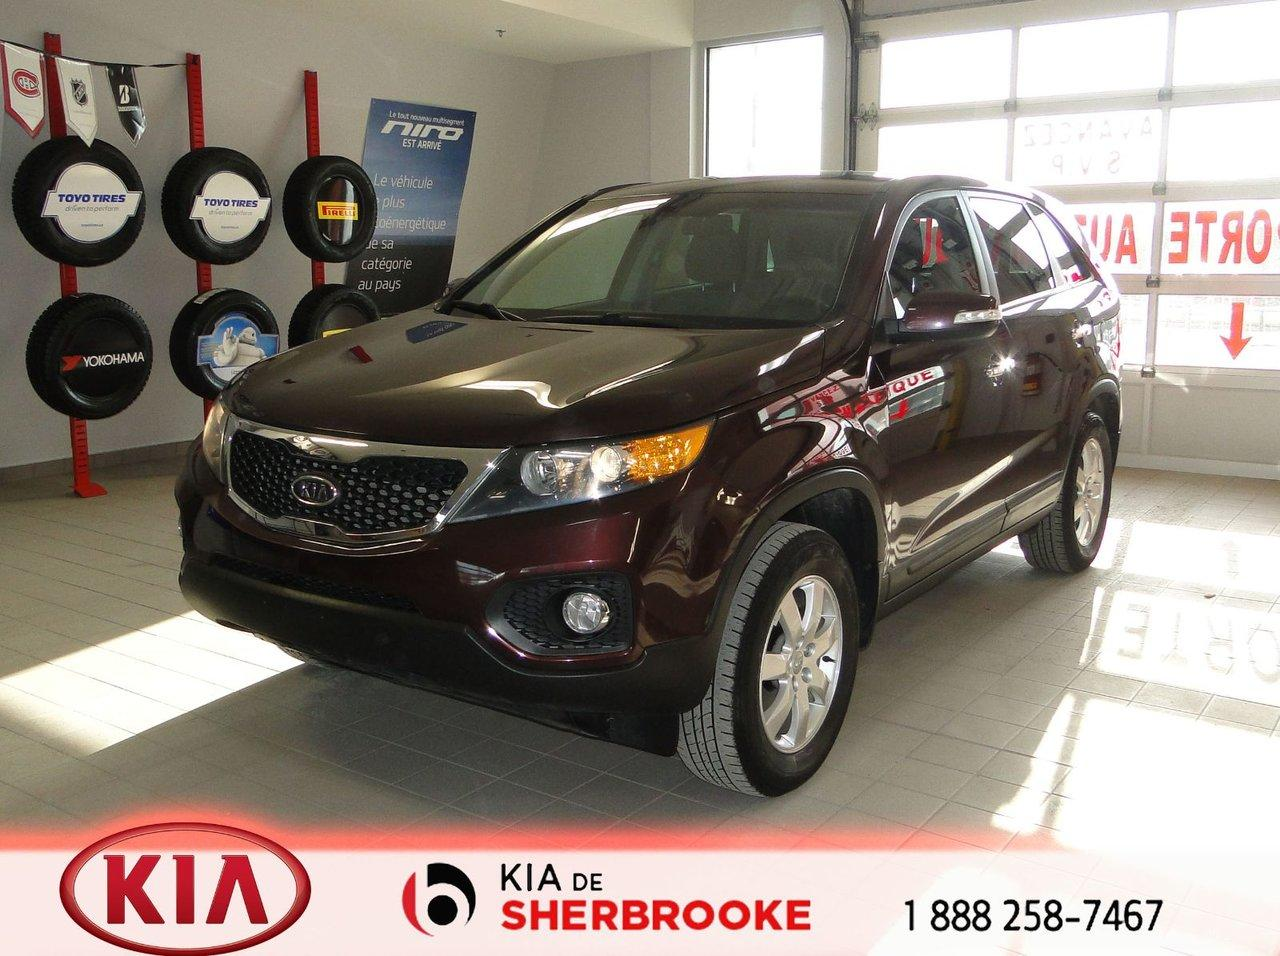 for d g car sale used kia superstore at sorento coates